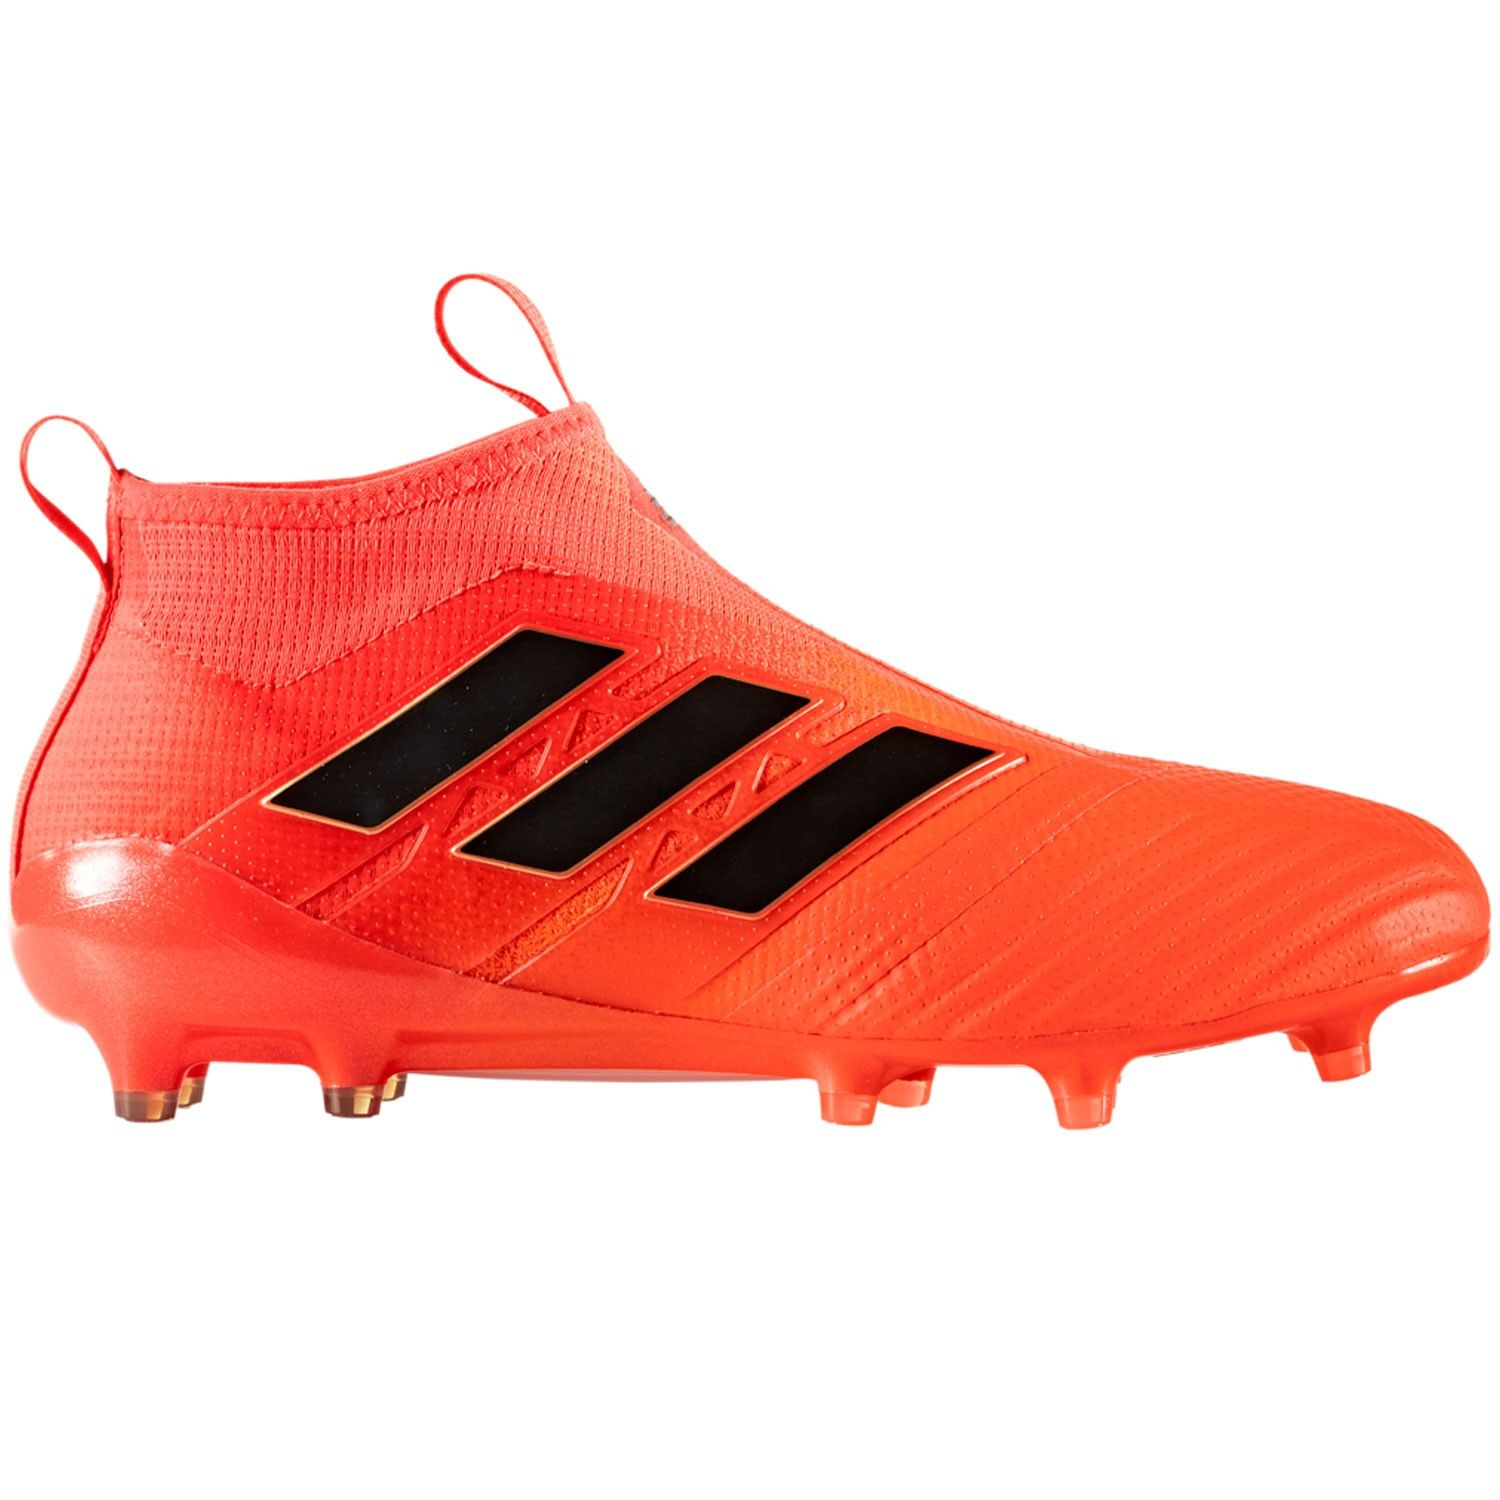 brand new a2ac3 aa6b3 Adidas Soccer Cleats  Adidas ACE 17+ Purecontrol FG Soccer Cleats Solar  Orange-Core BlackSolar Red.The energy of aqua and legendary ink coloring  adds to the ...